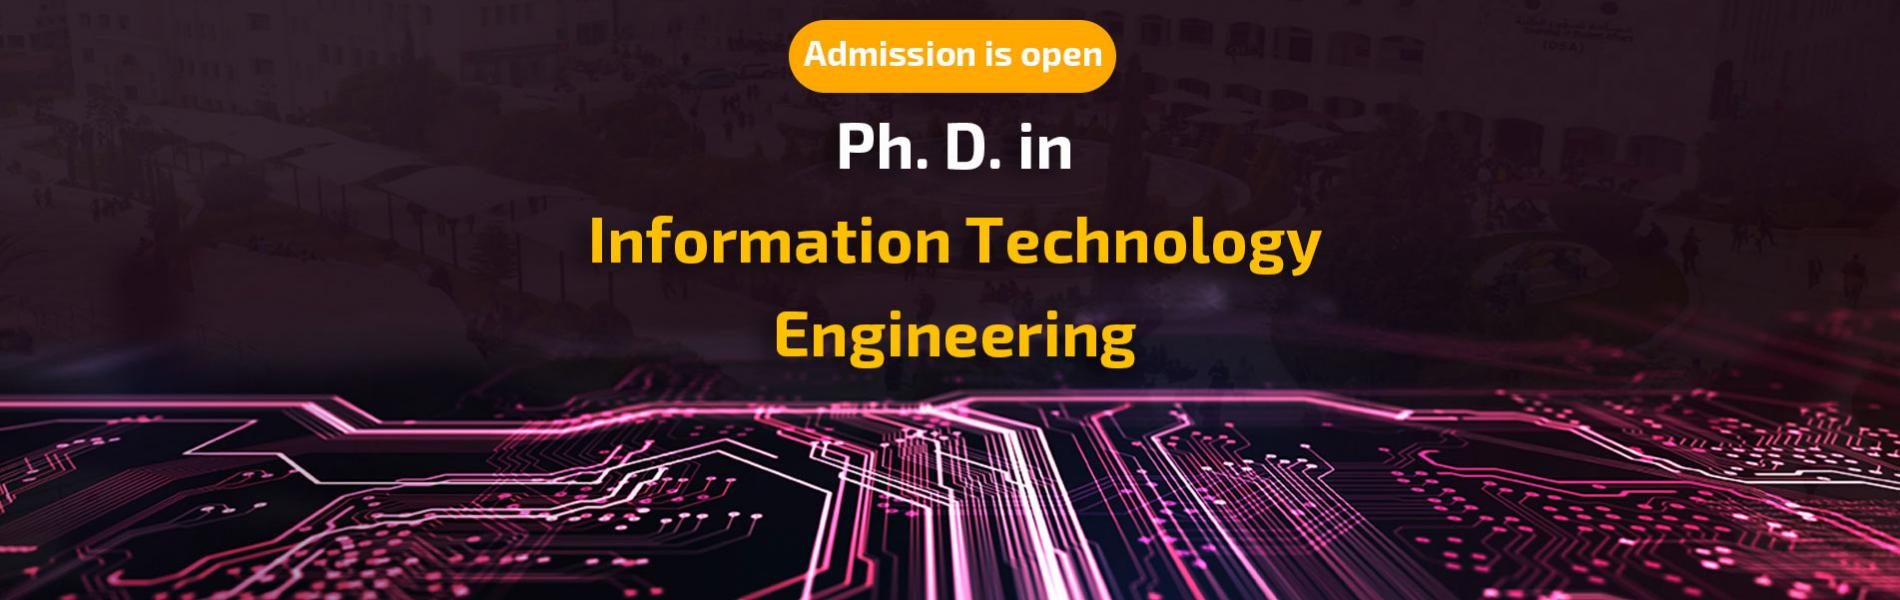 Start Accepting Application for Admission to the Ph.D. in Information Technology Engineering Program for the for Fall Semester of Academic Year 2020/2021